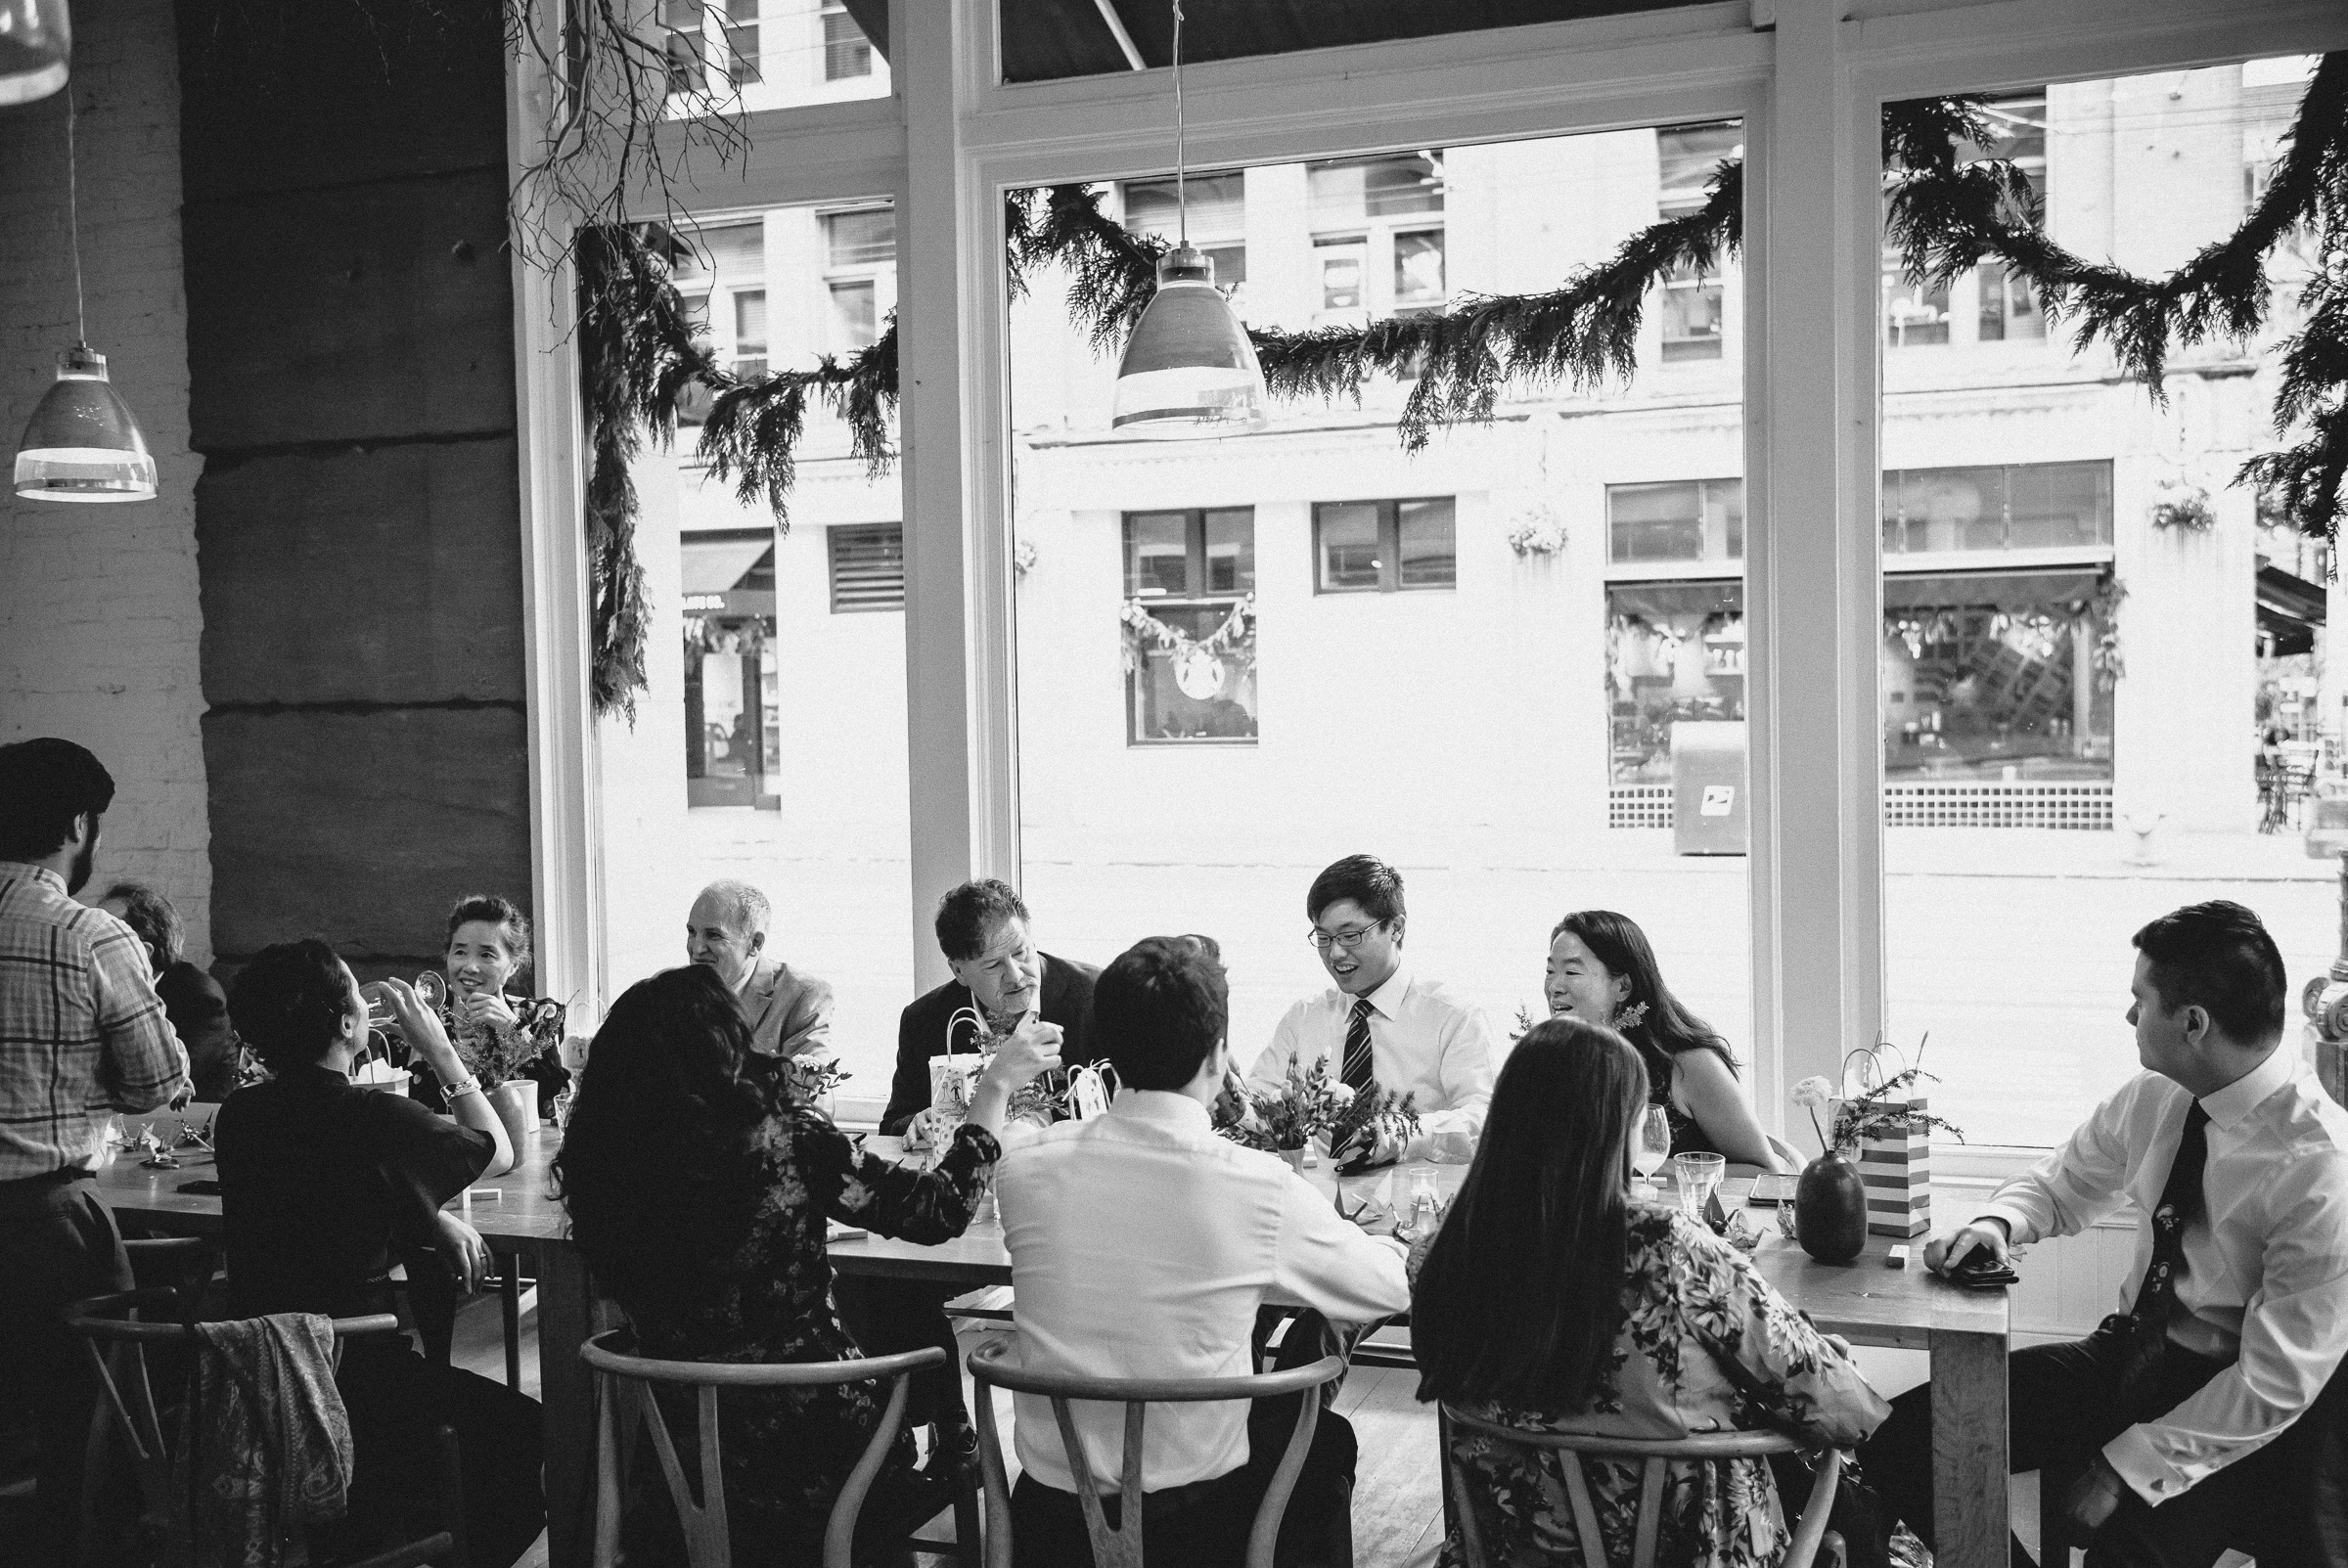 Wedding Reception at The Little London Plane in Pioneer Square, Seattle.